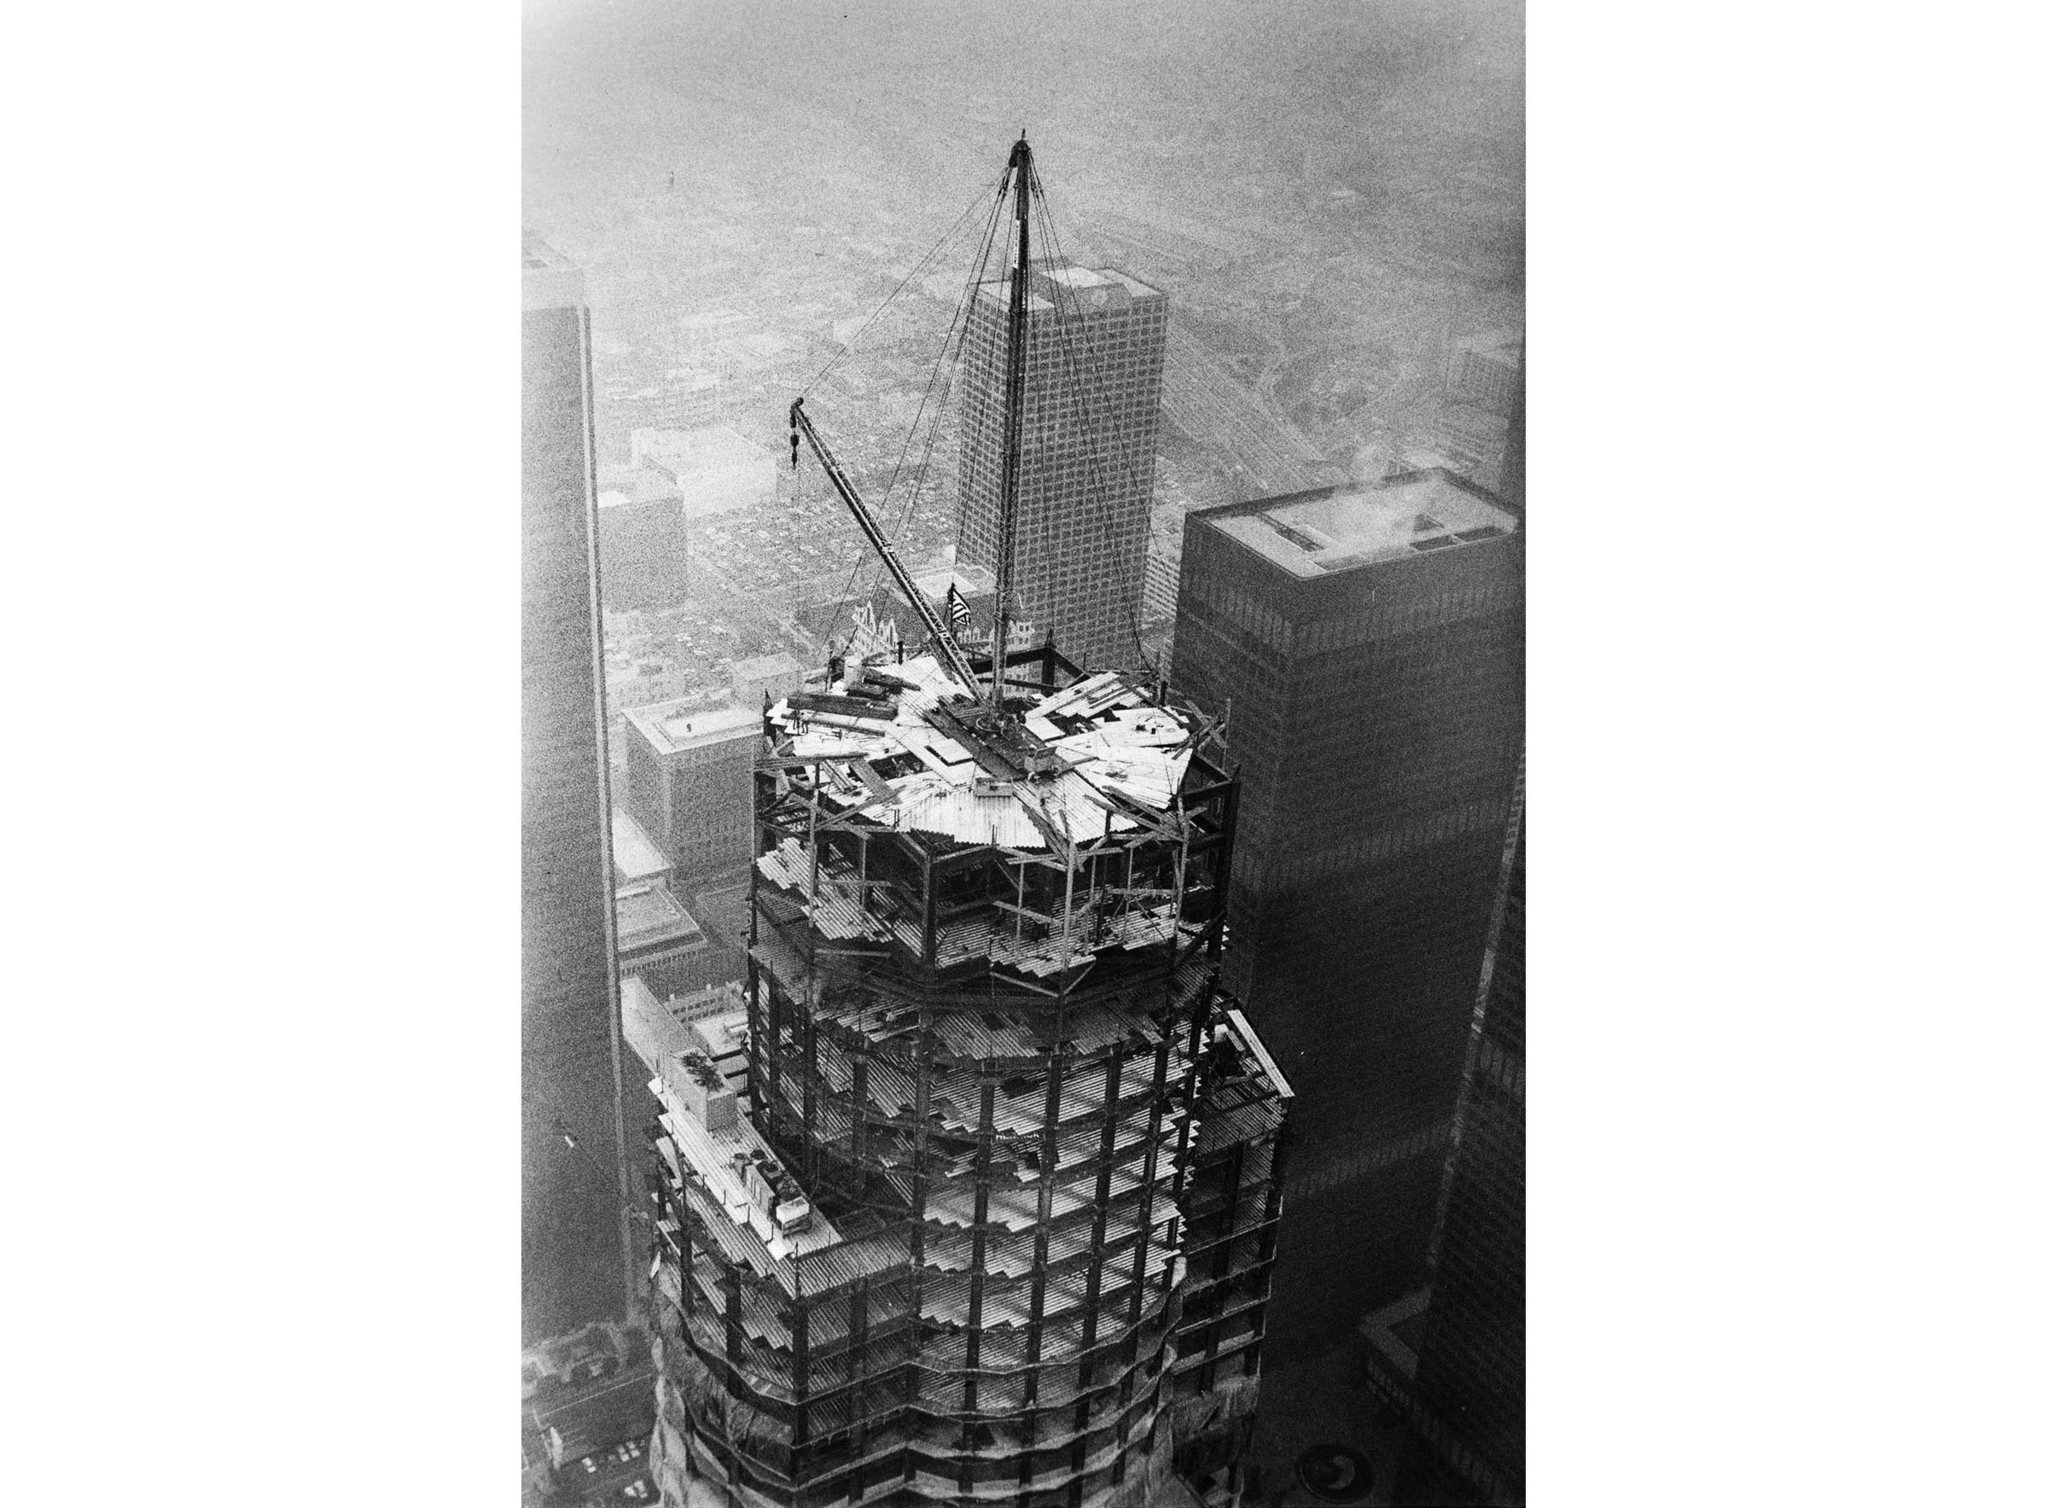 April 18, 1989: Top of the Library Tower, now U.S. Bank Tower, in downtown Los Angeles about 30 minu